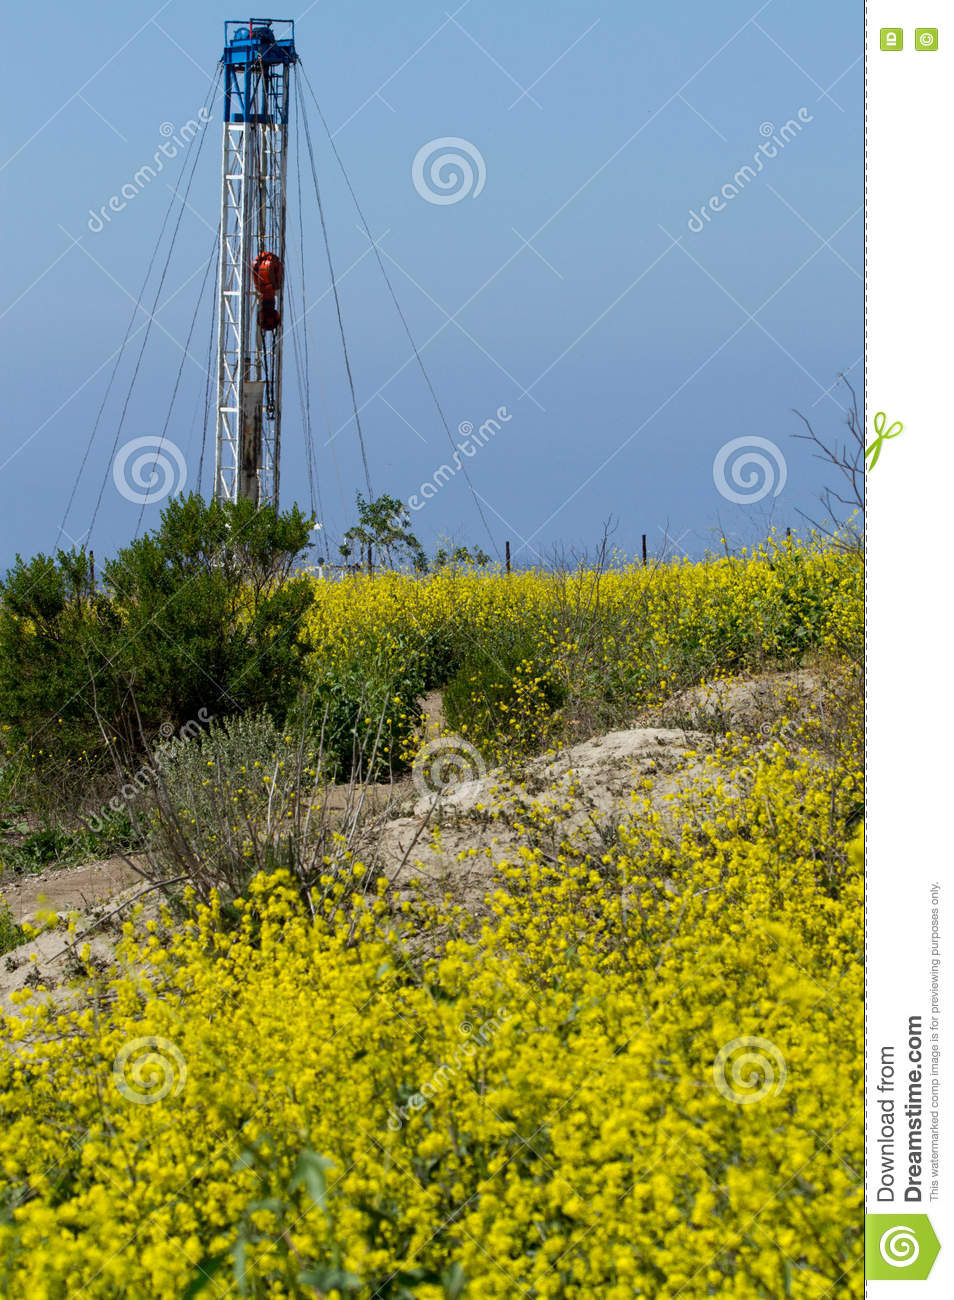 Aceite Rig With Yellow Flower Foreground